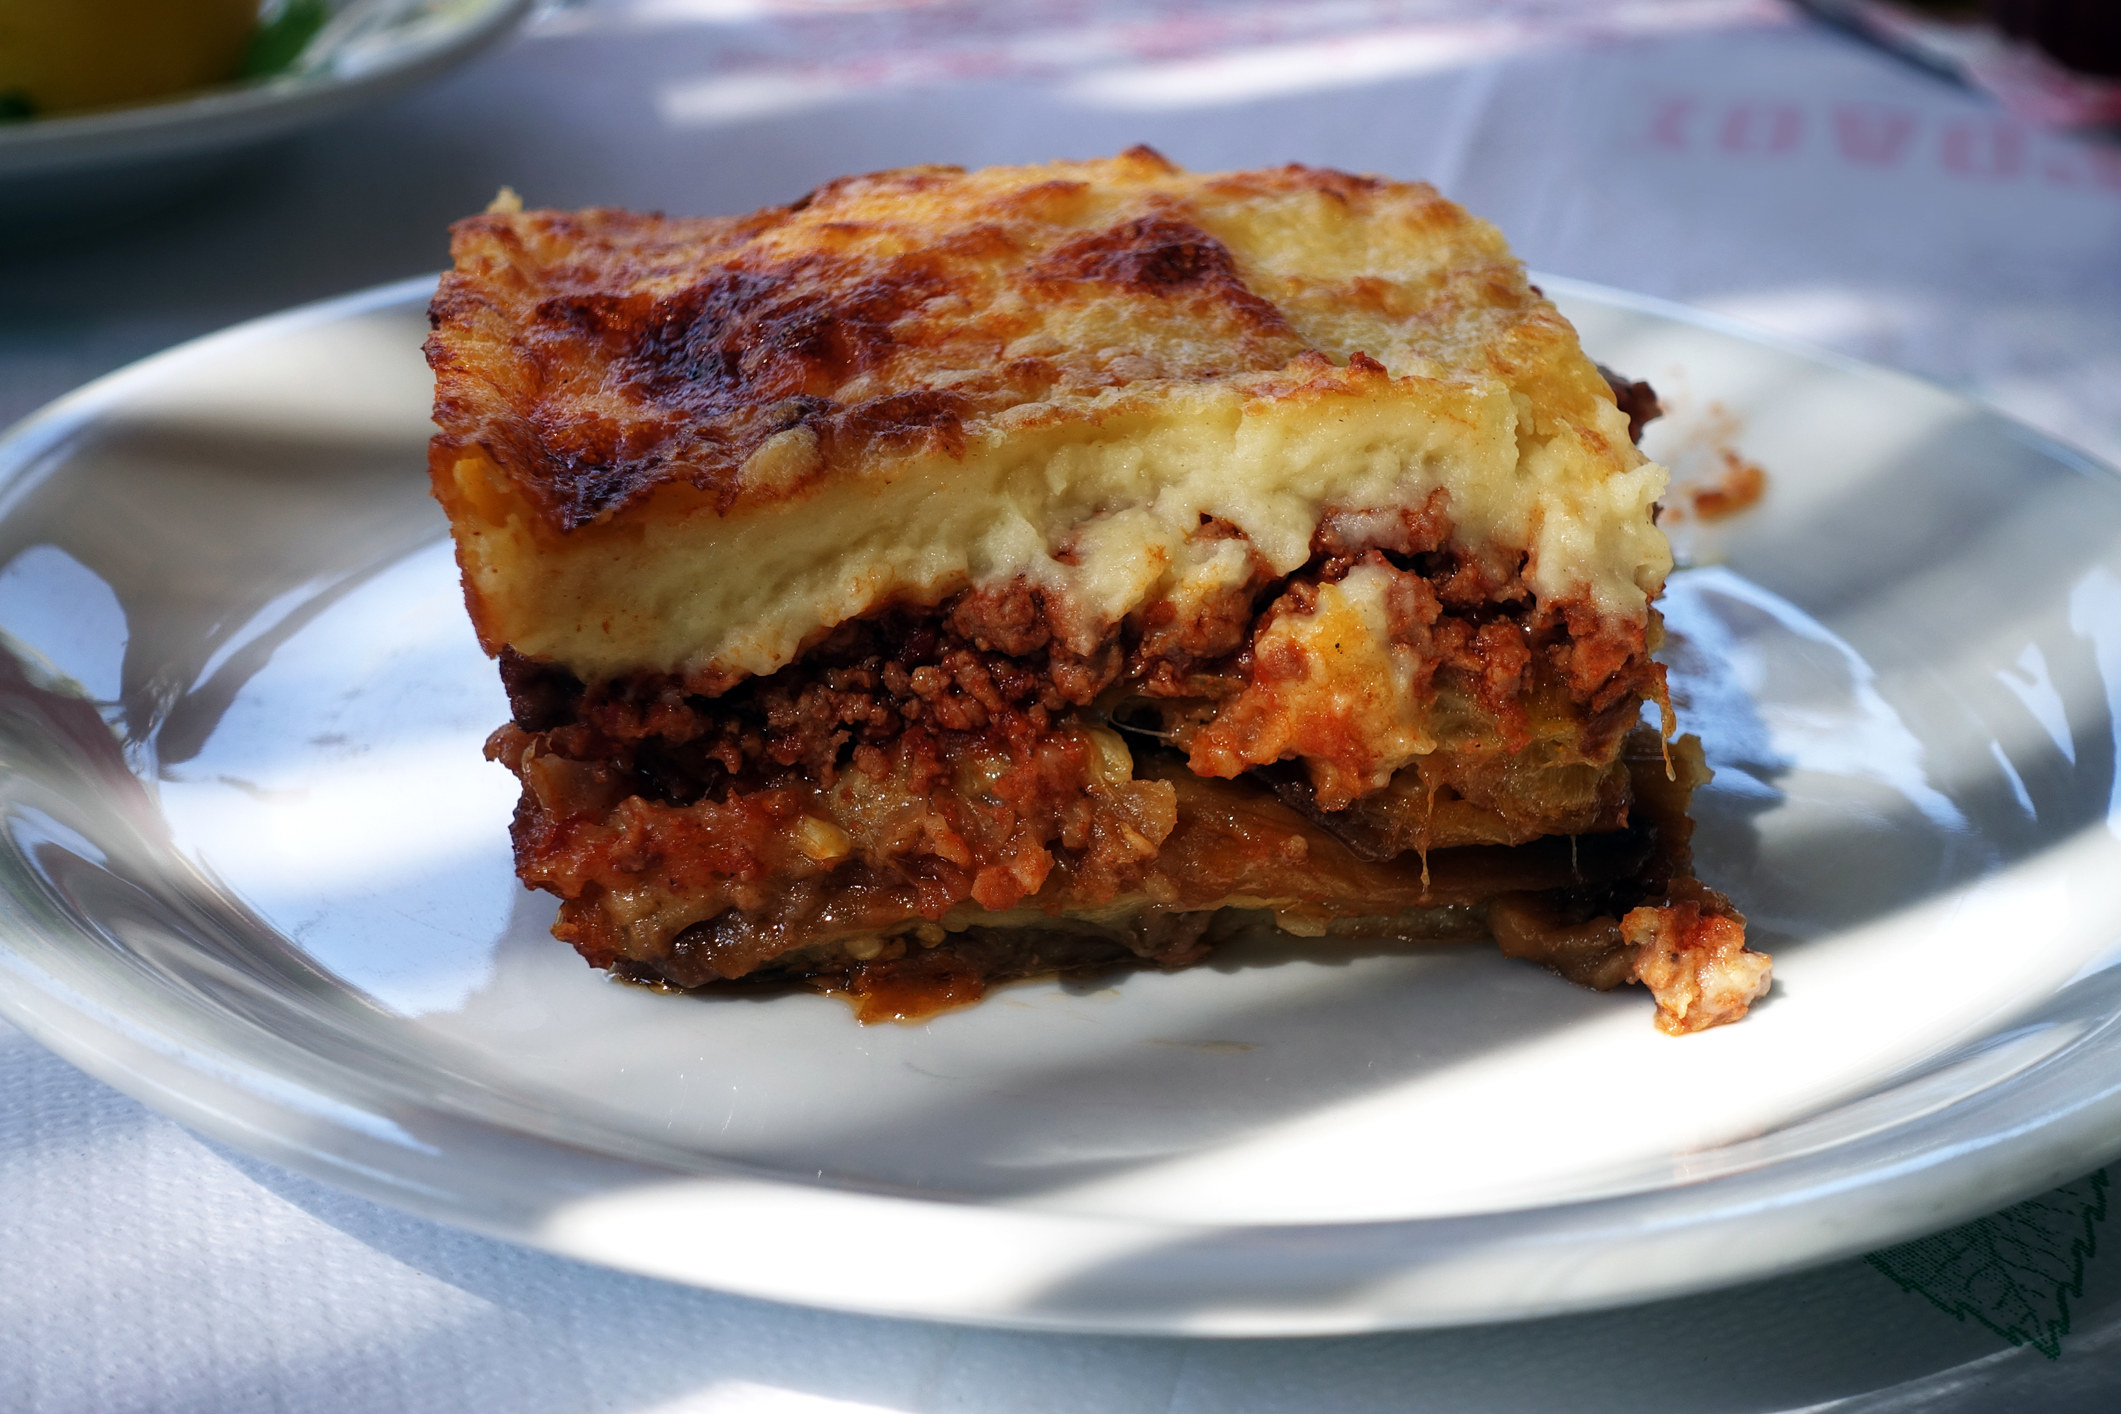 big slice of moussaka with a golden brown top, served on a white plate